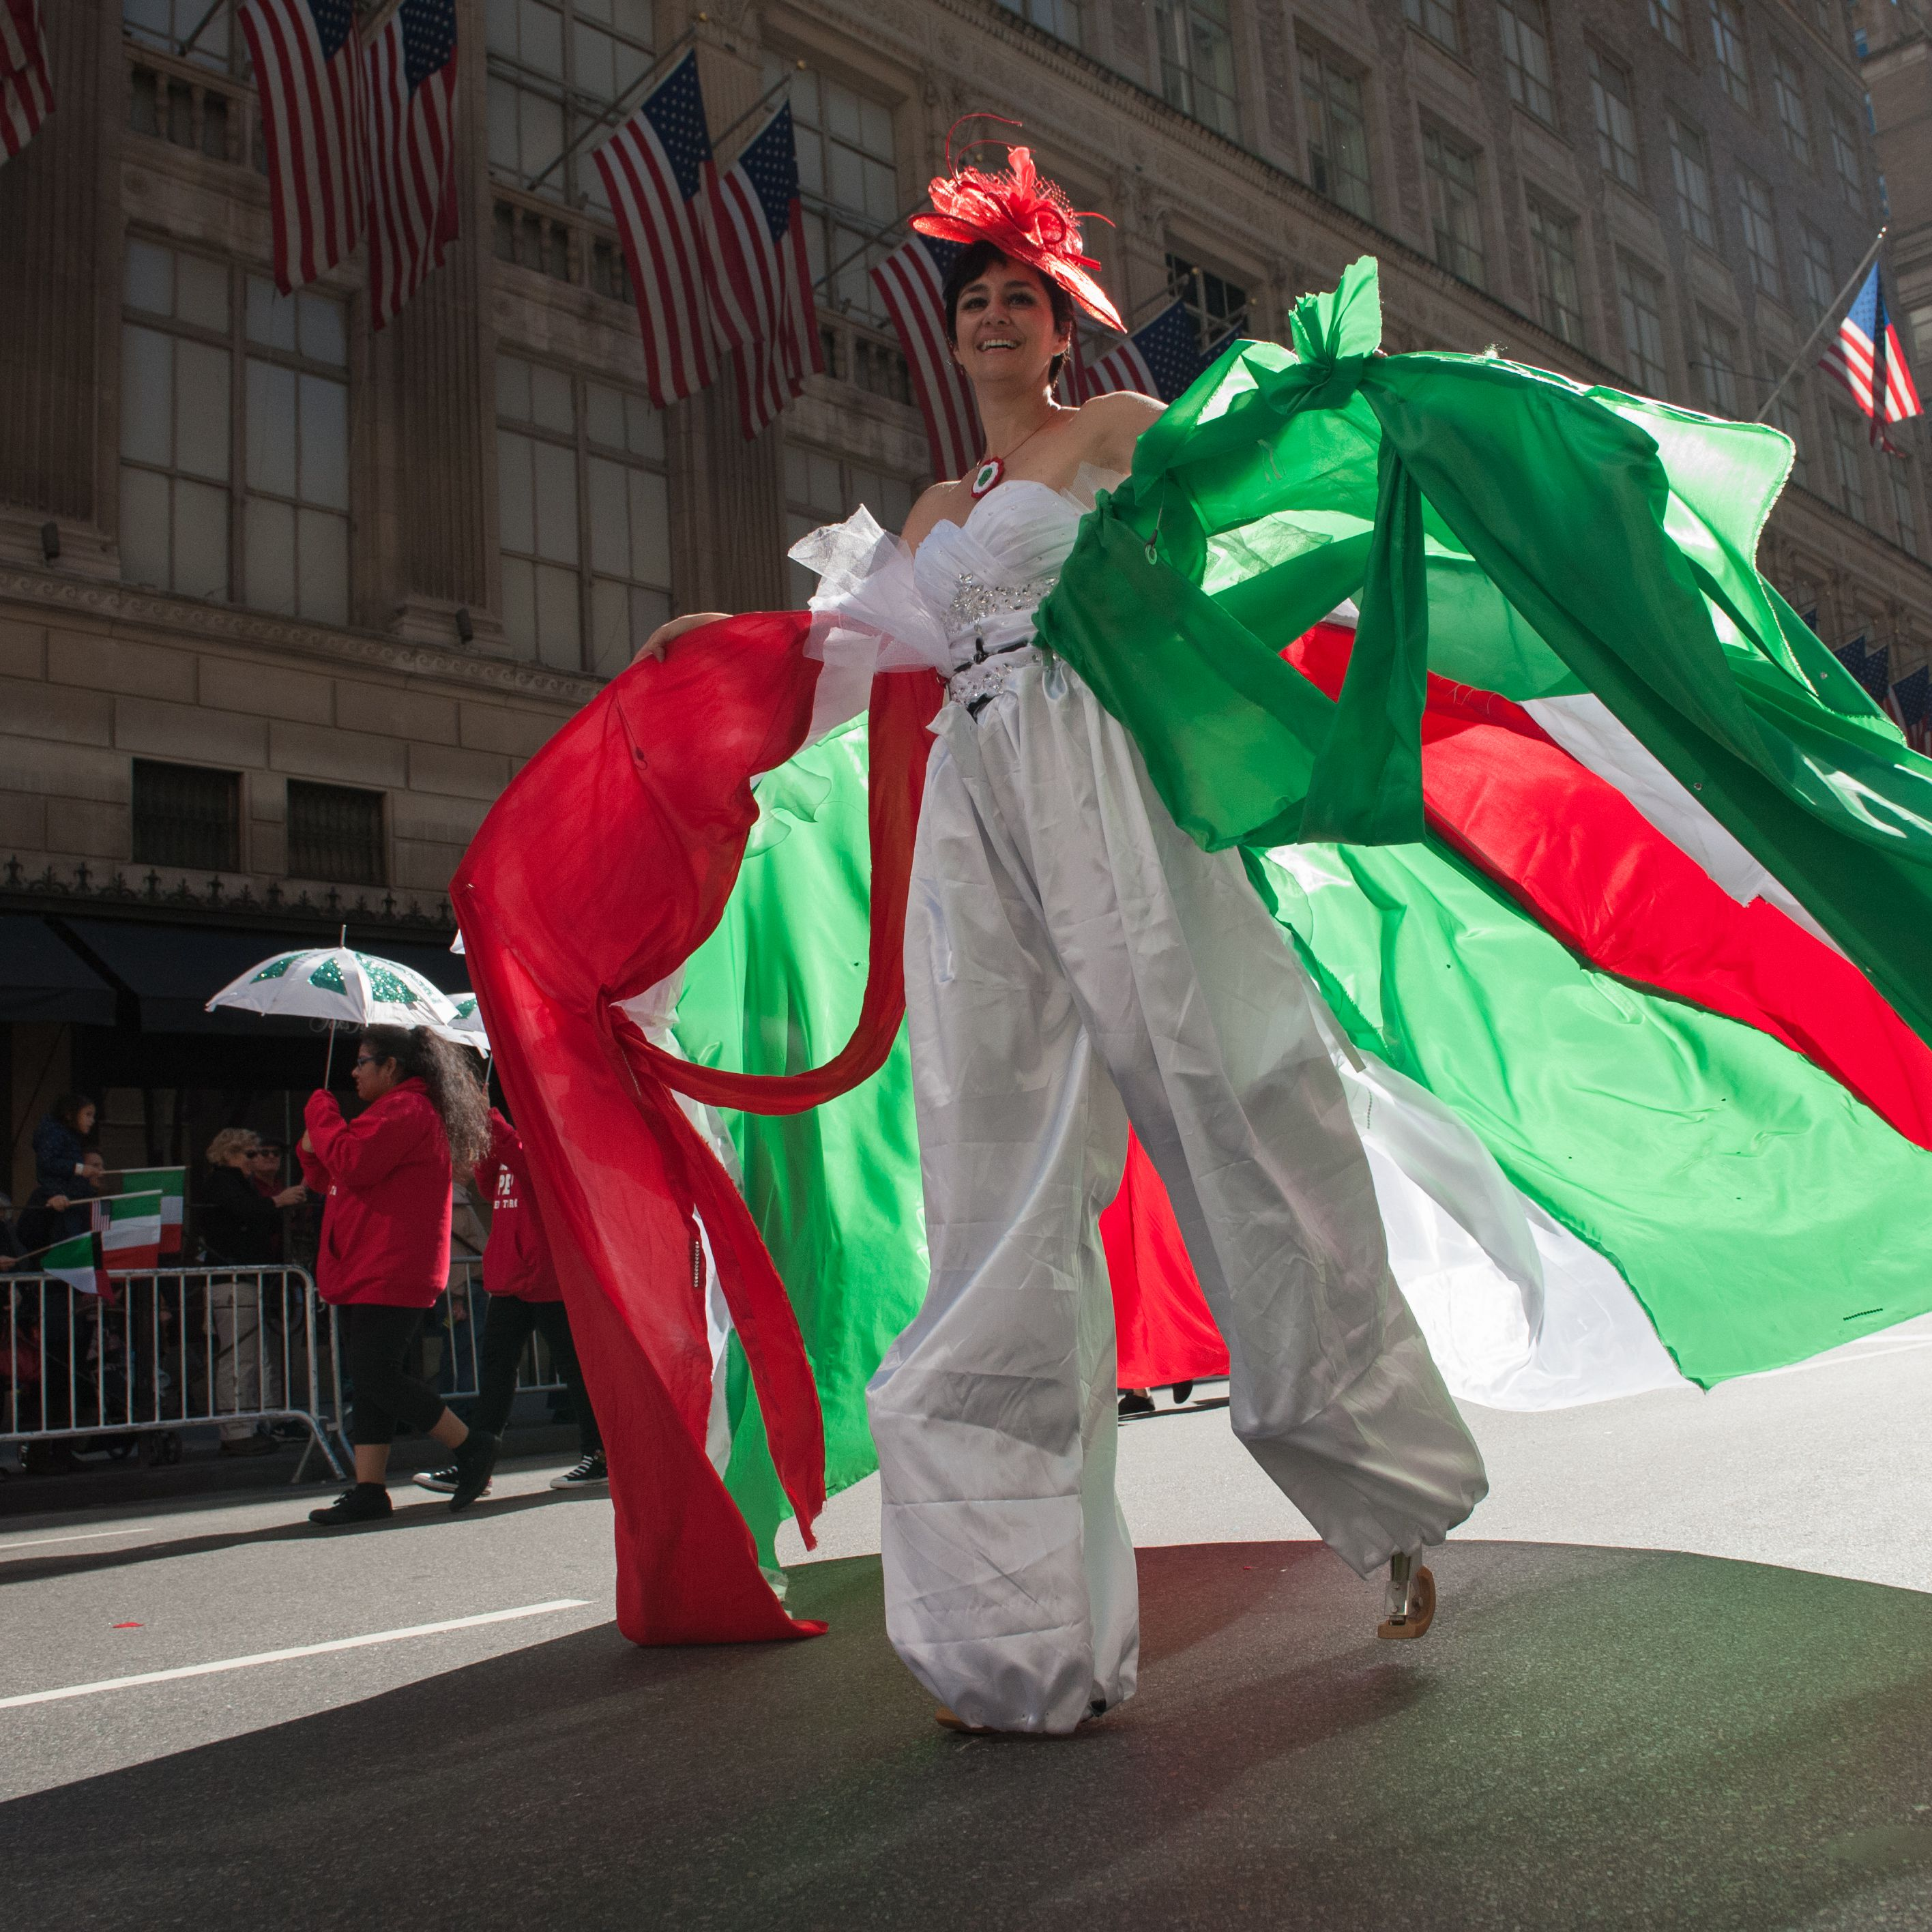 A Guide to the Columbus Day Parade in New York City